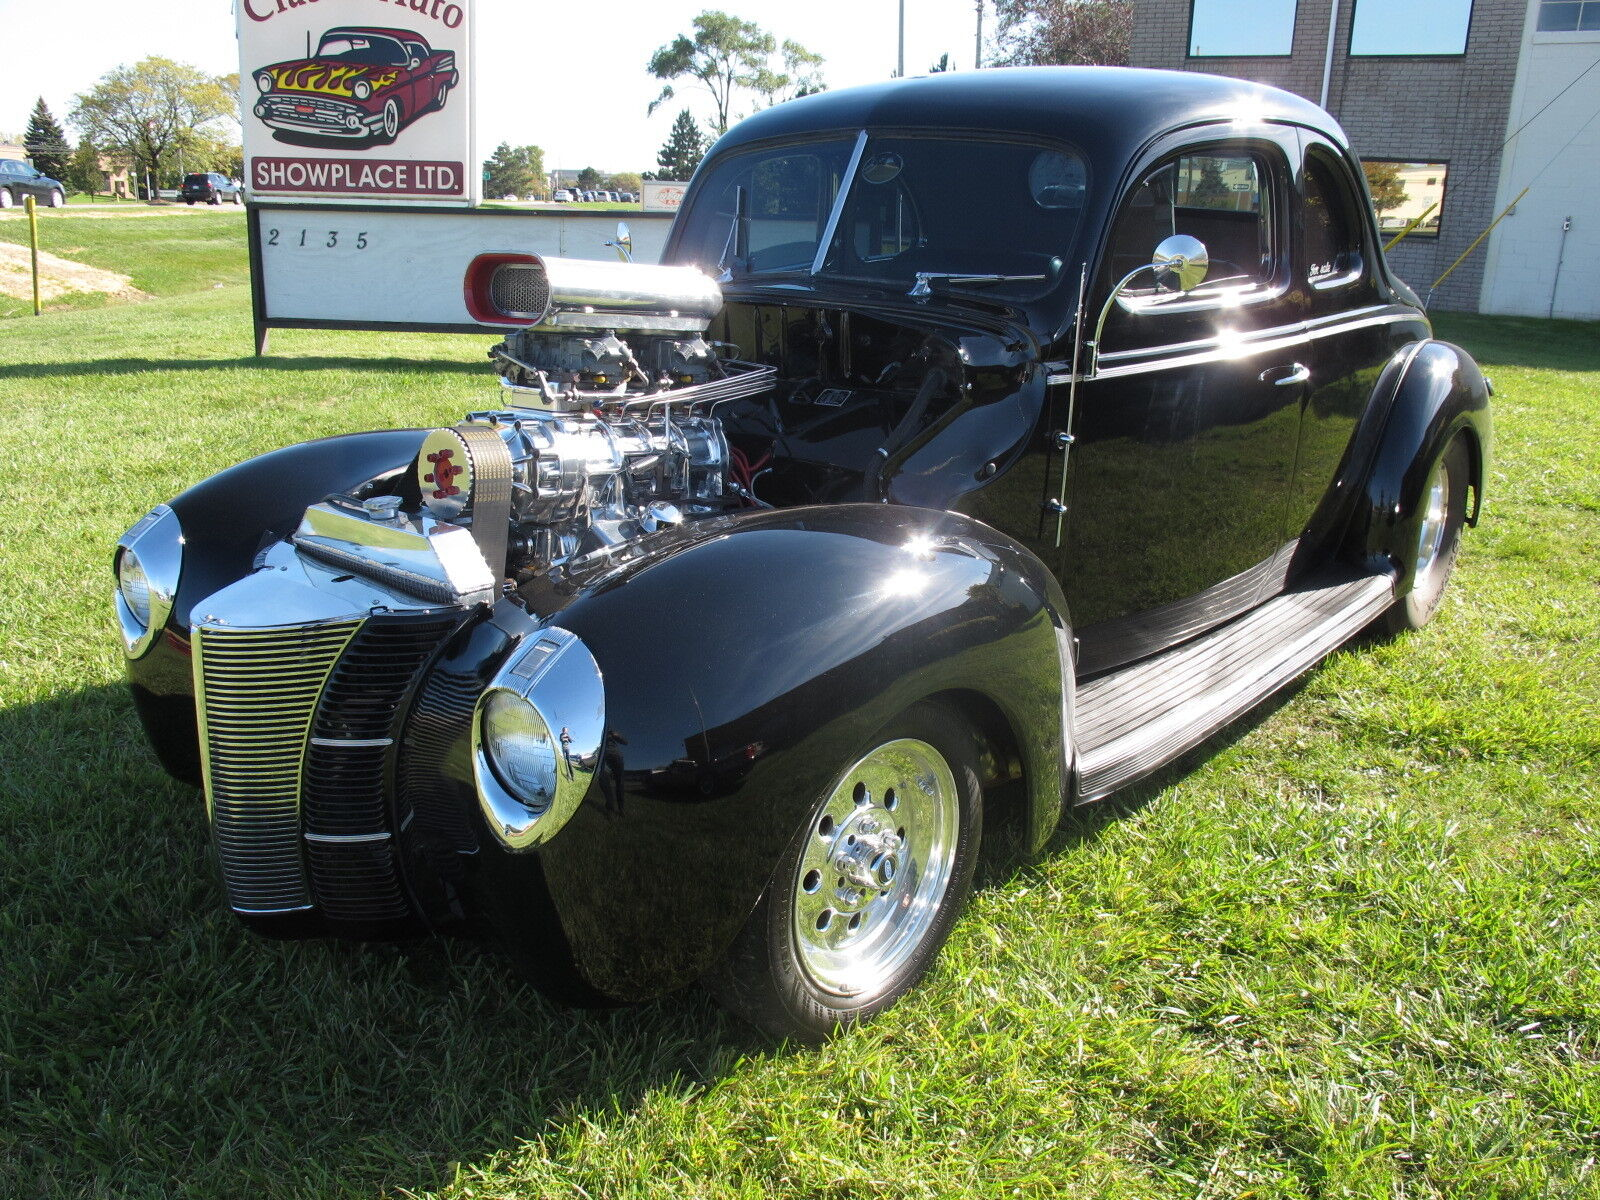 1940 Ford Deluxe Street Rod 1940 Ford Deluxe Coupe - Street Rod - BLACK/BLACK - 383 Stroker Supercharged